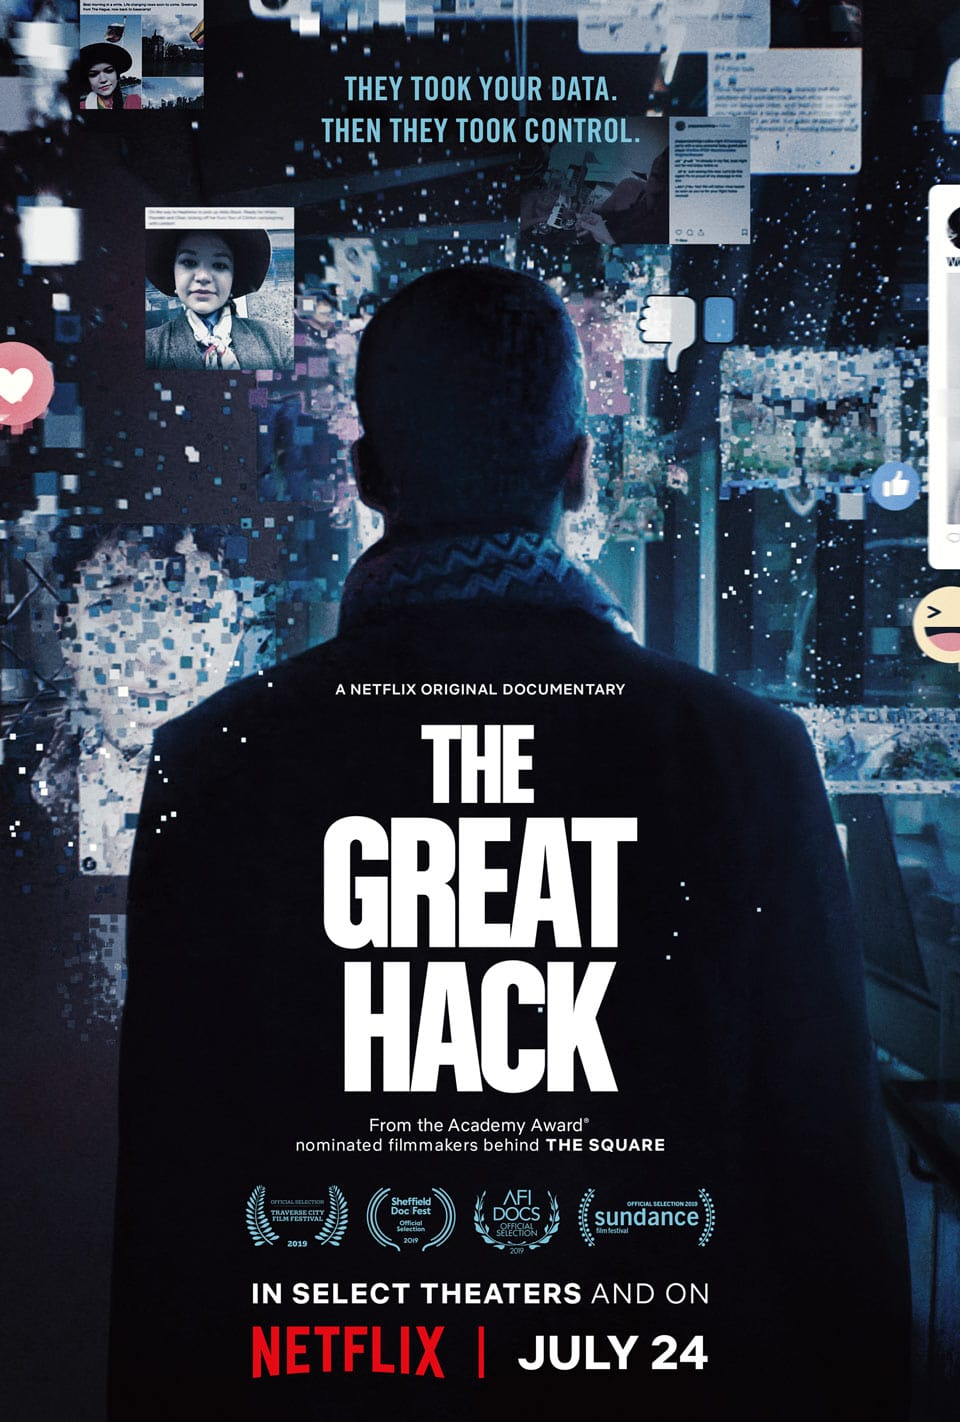 THE GREAT HACK | A Netflix Original Documentary | July 24